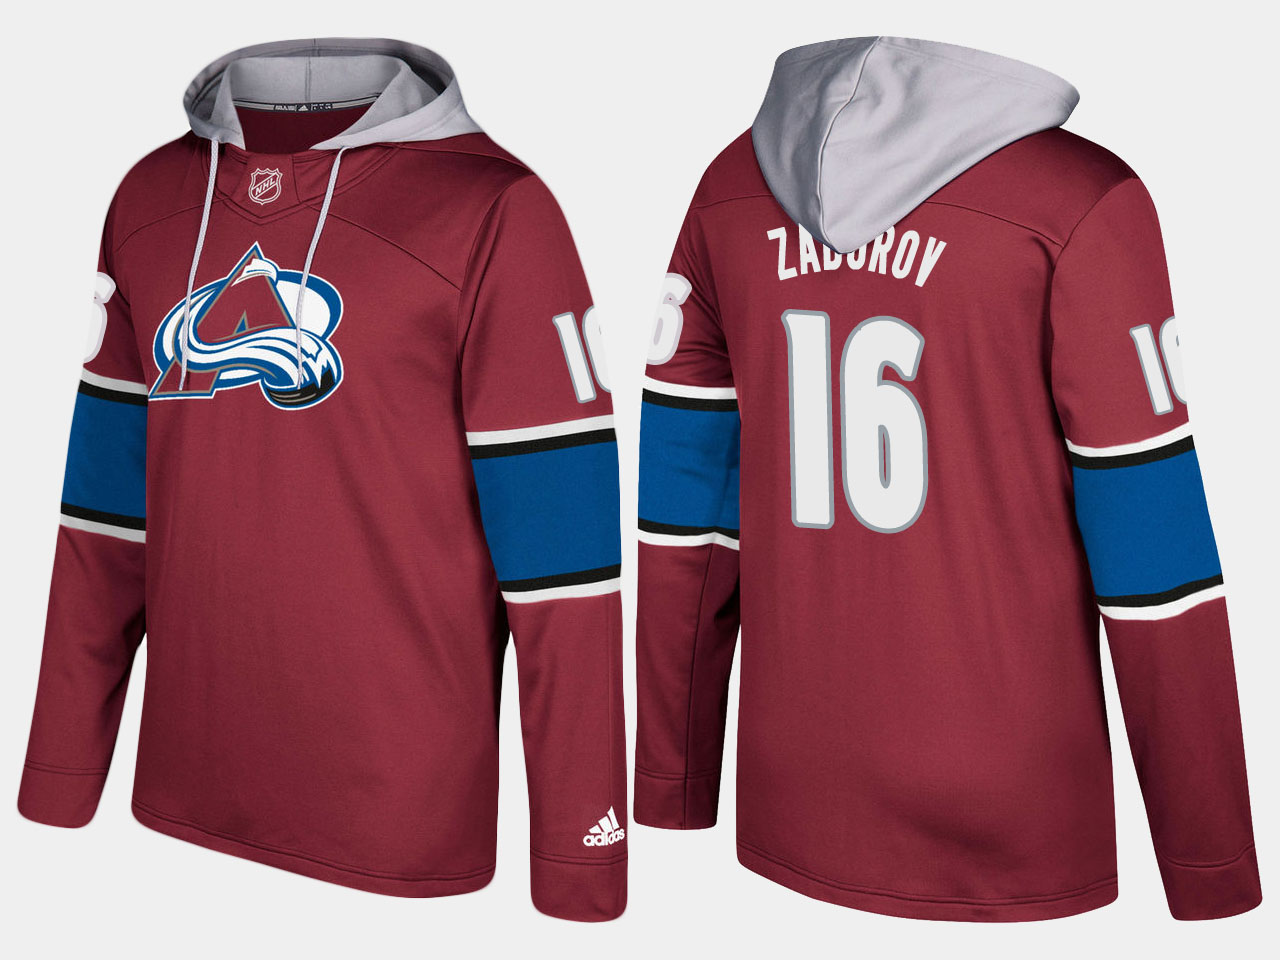 Men NHL Colorado avalanche 16 nikita zadorov burgundy hoodie